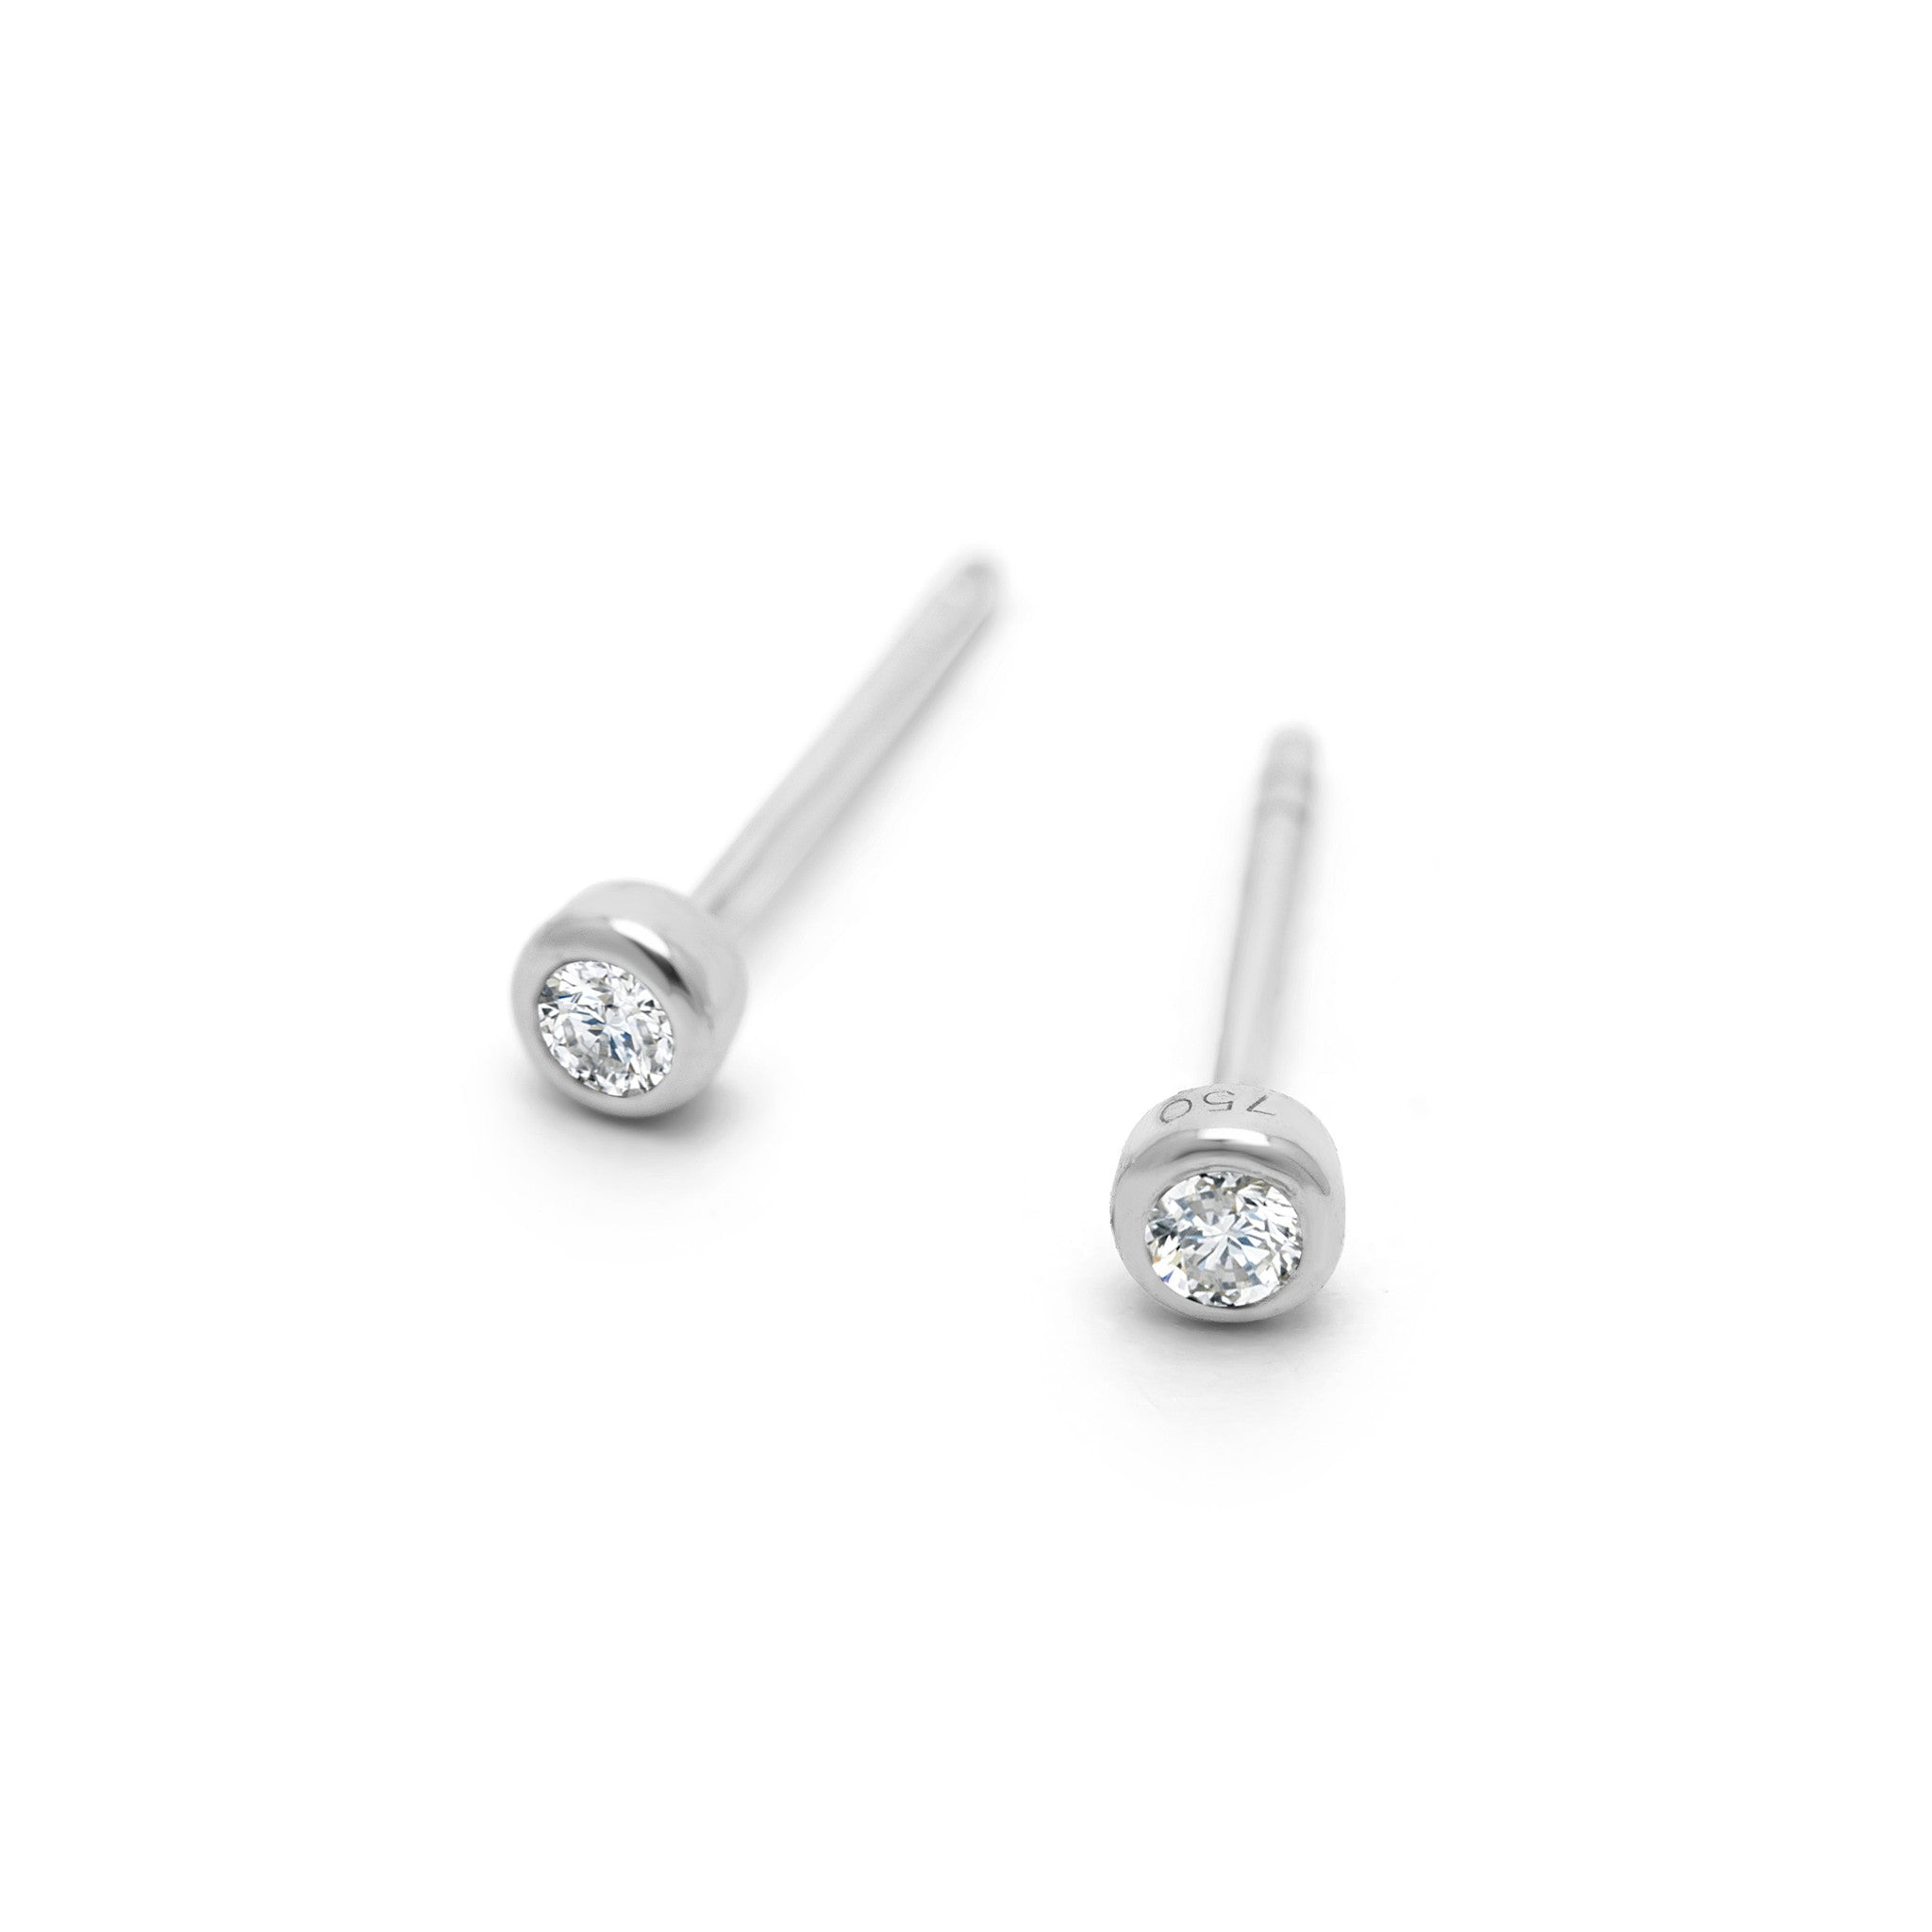 magal half studs earrings circle diamonds solitaire jewelry diamond product